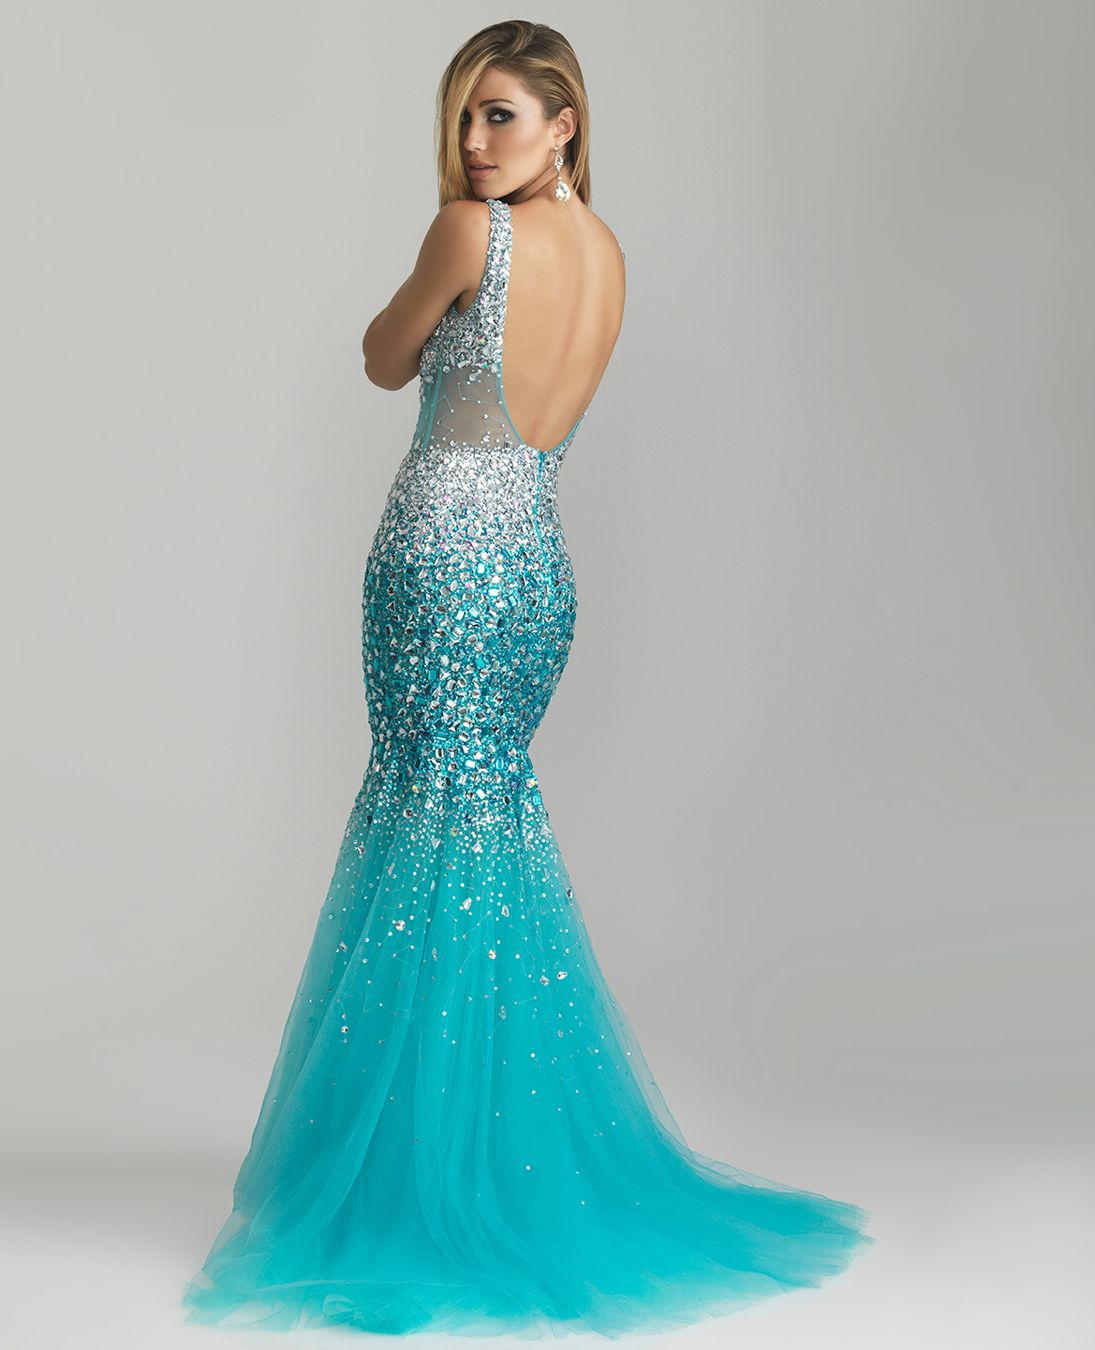 Turquoise sheer sequin u tulle low back mermaid prom gown unique